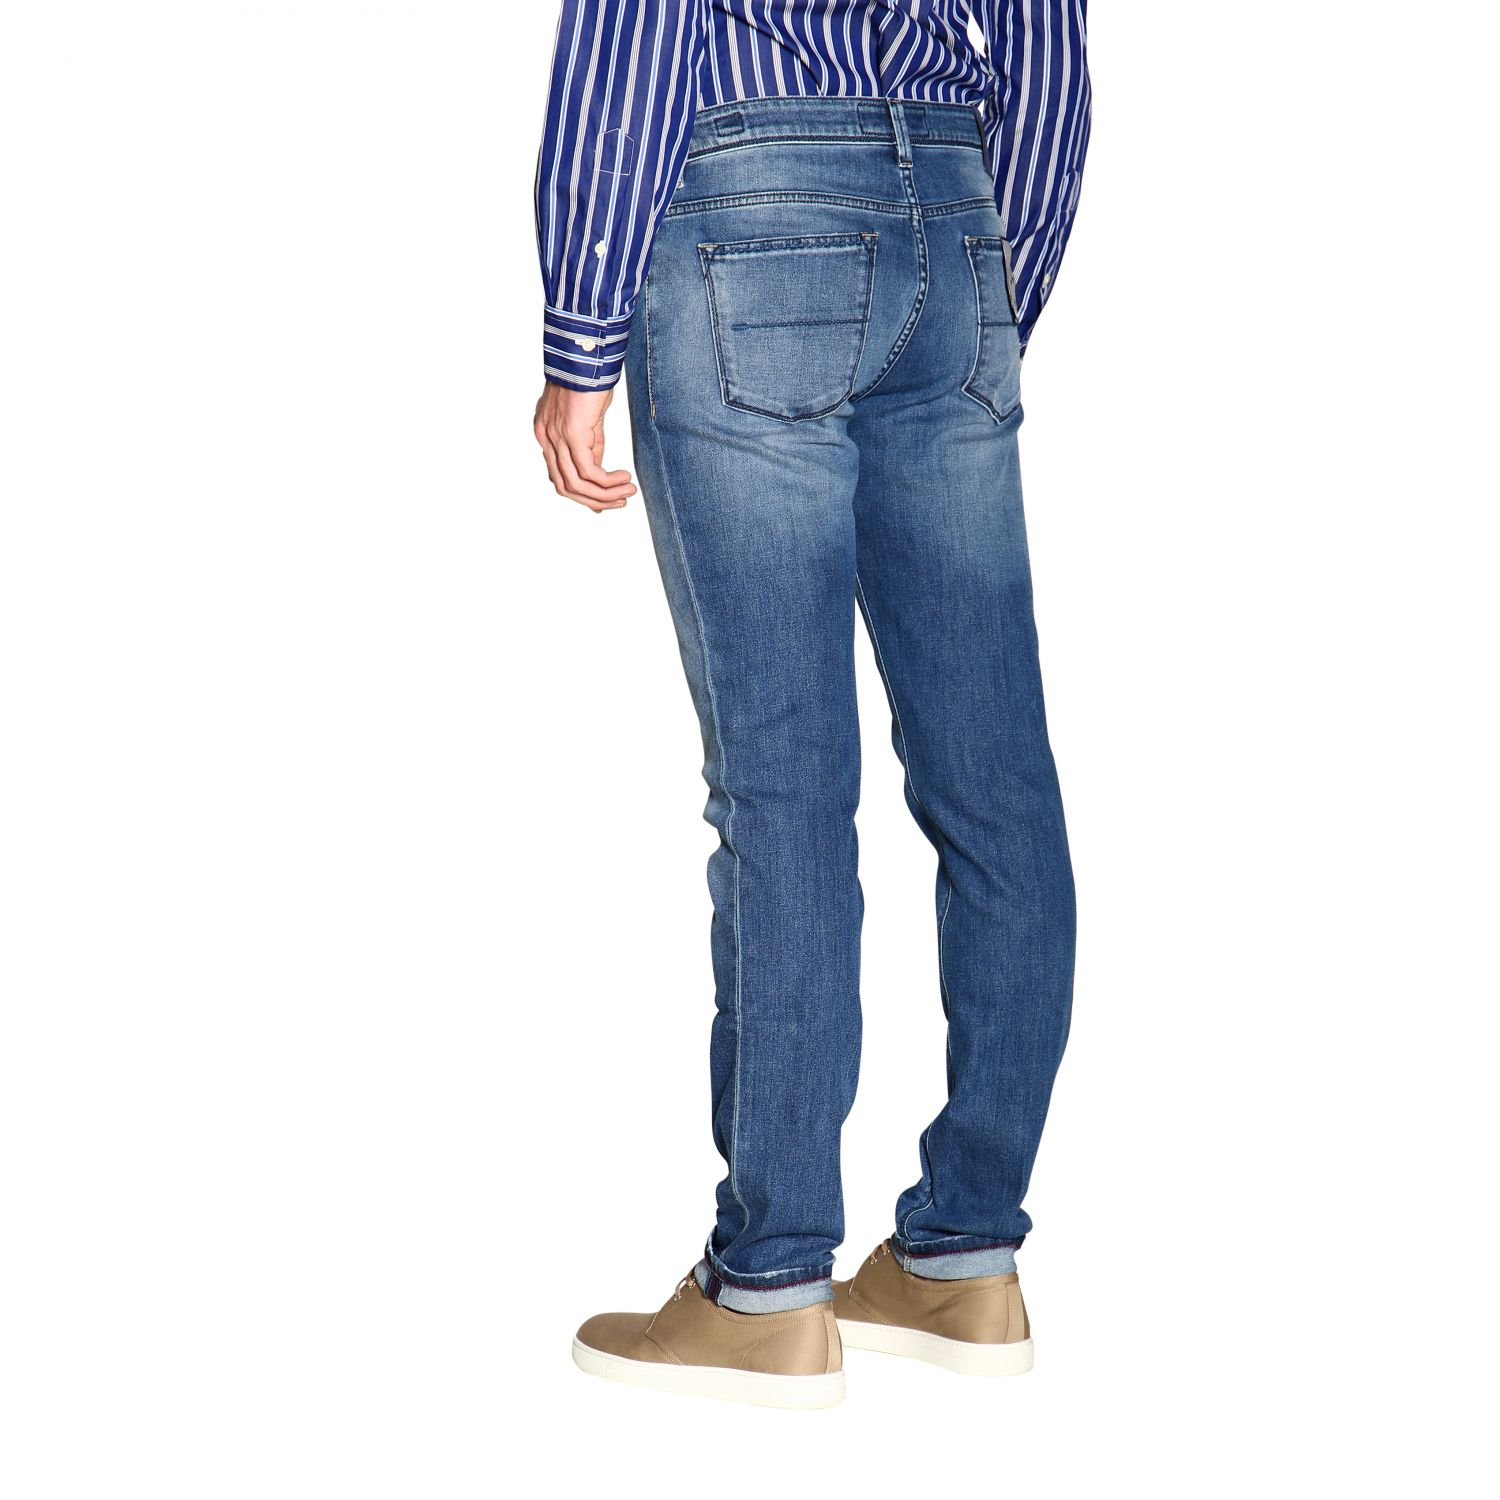 Jeans hombre Re-hash azul oscuro 3